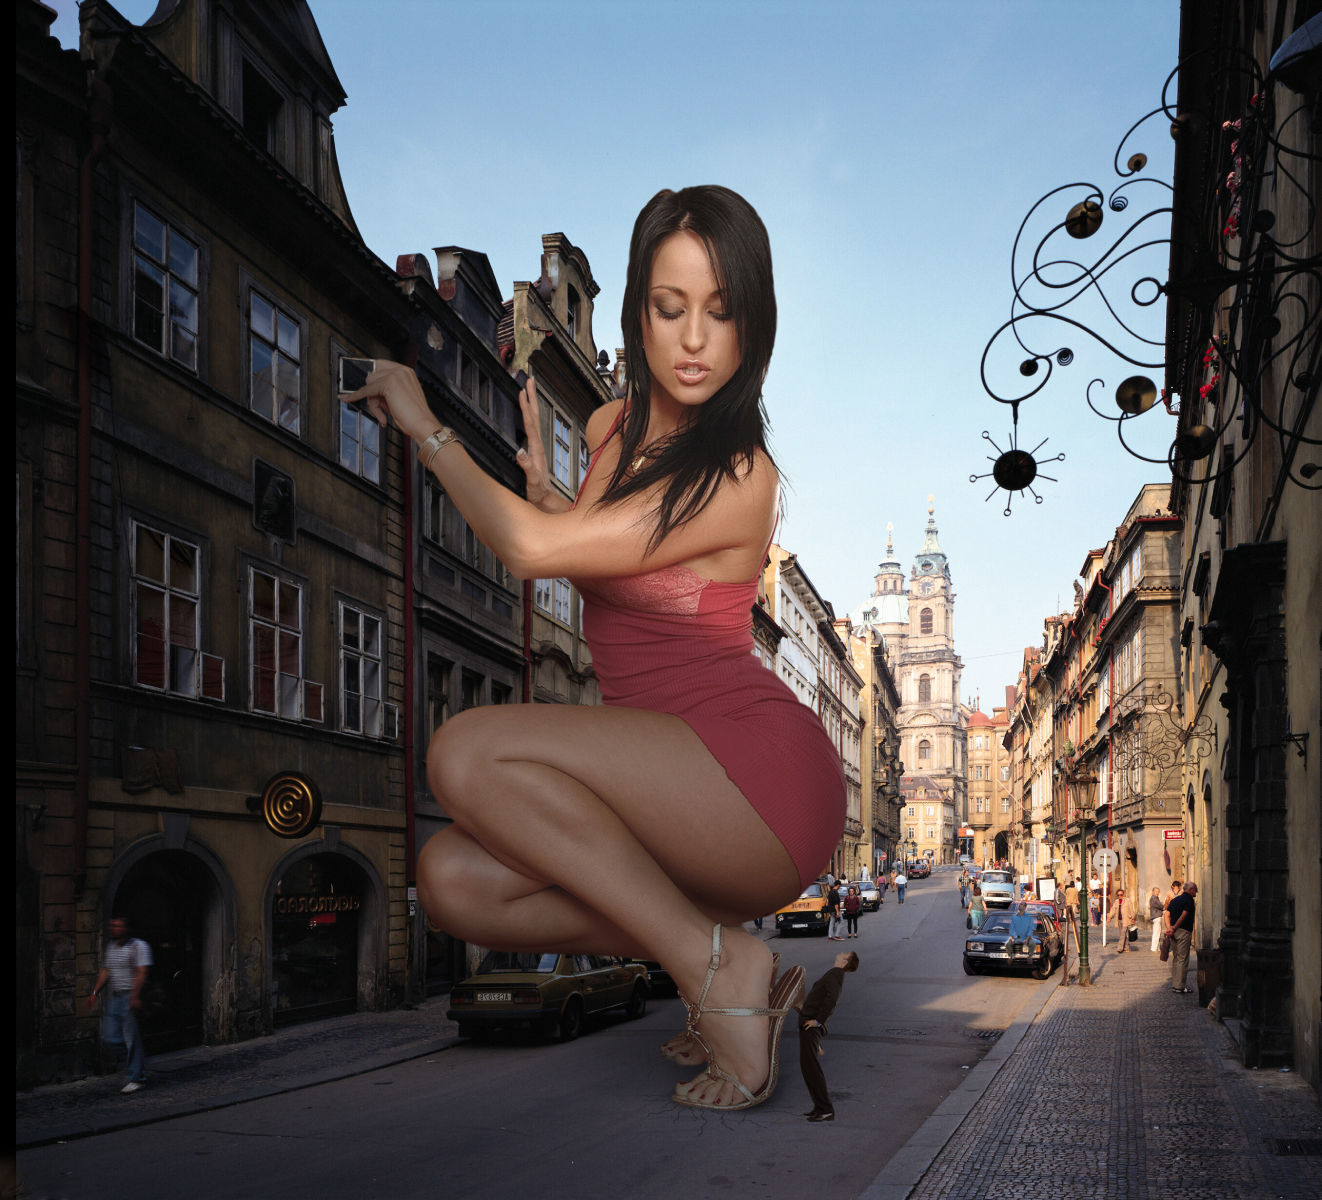 Prague 50 Foot Woman by Accasbel